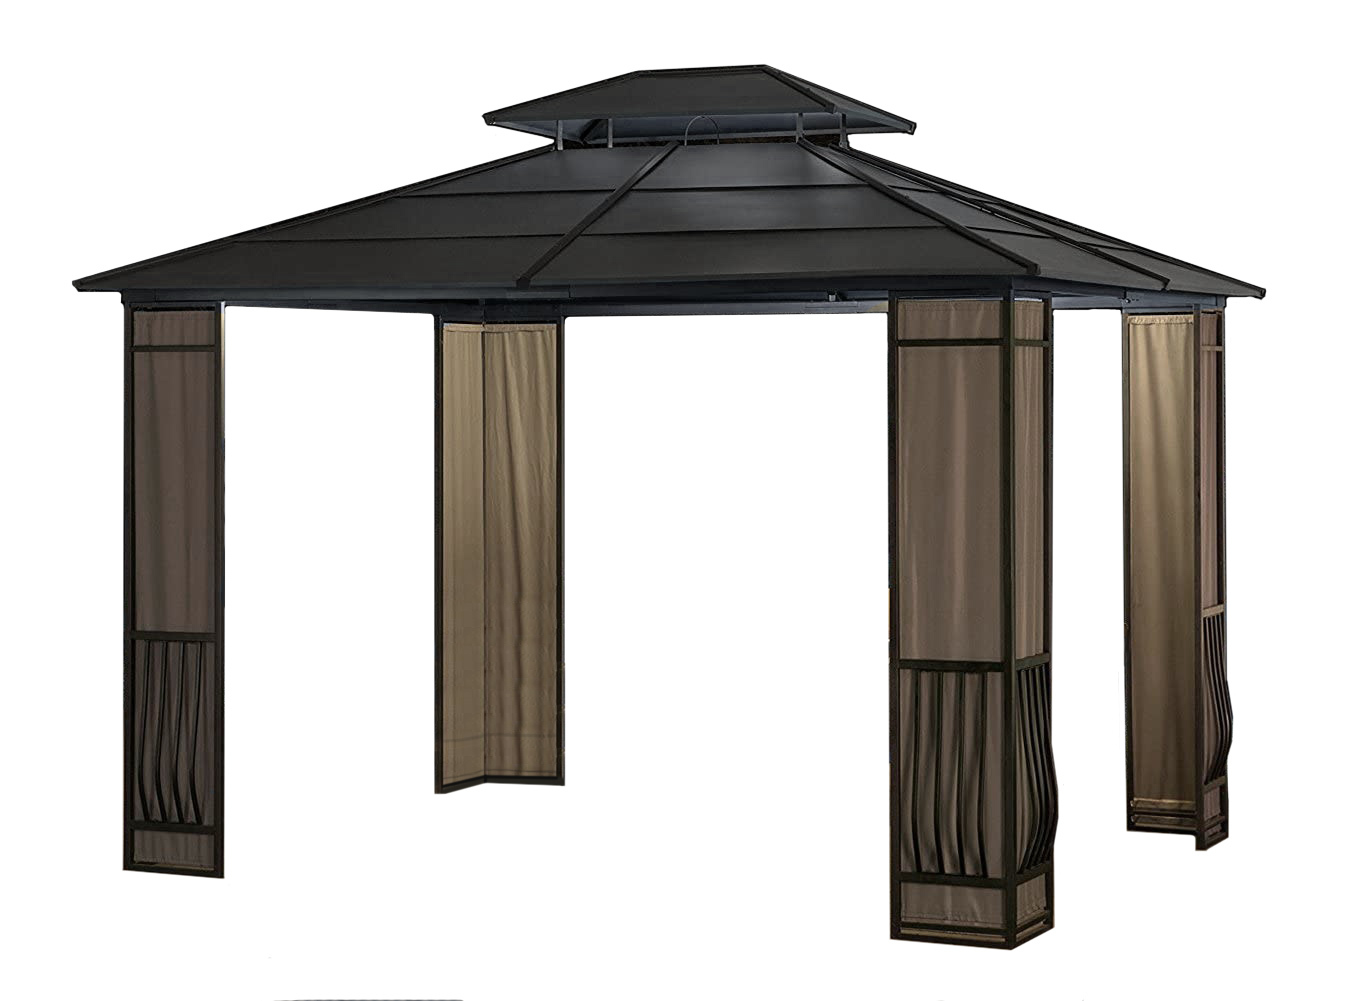 expand your outdoor living space with a 10 x 12 heavy duty galvanized steel hardtop wyndham patio gazebo with mosquito netting